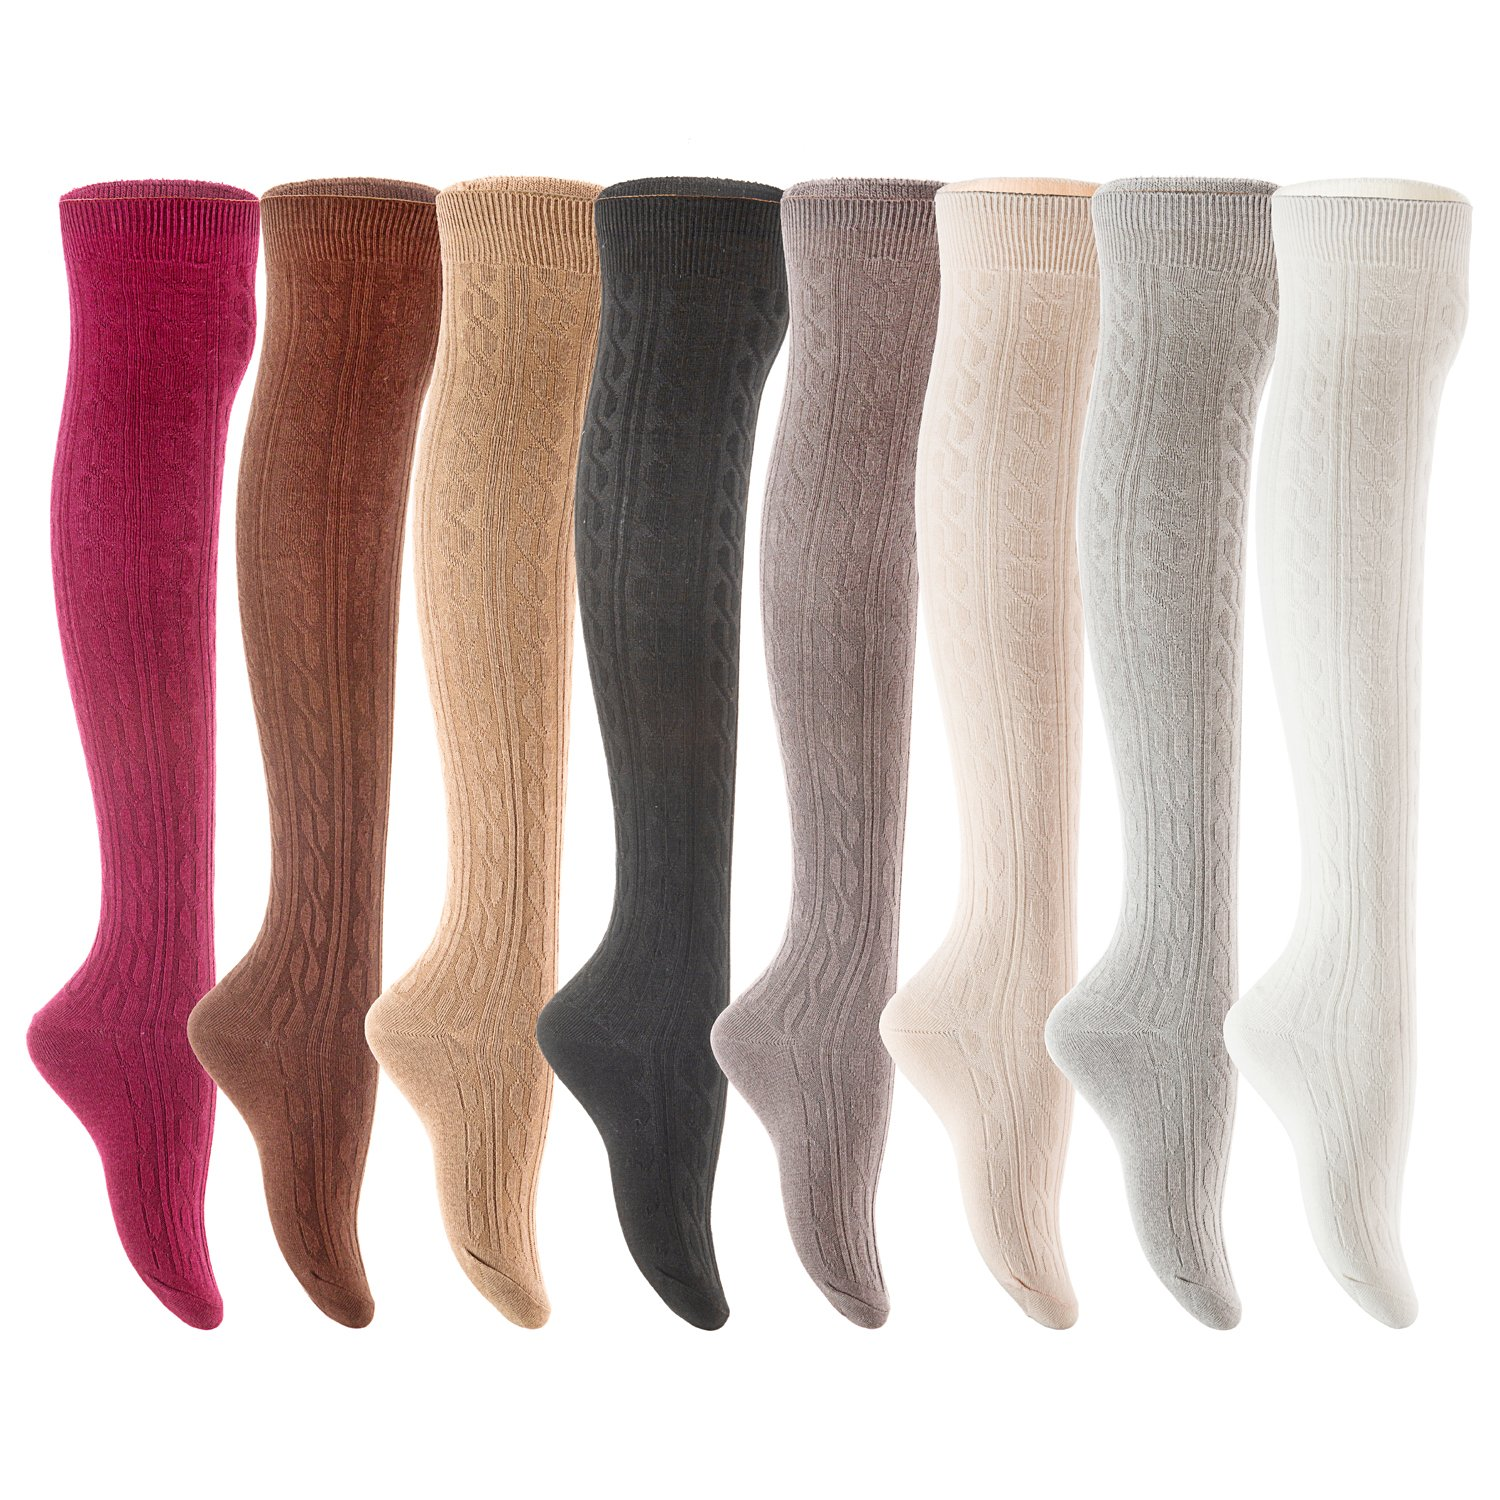 Assorted AATMart Women's 4 Pairs Over KneeHigh Thigh High Cotton Socks Size 69